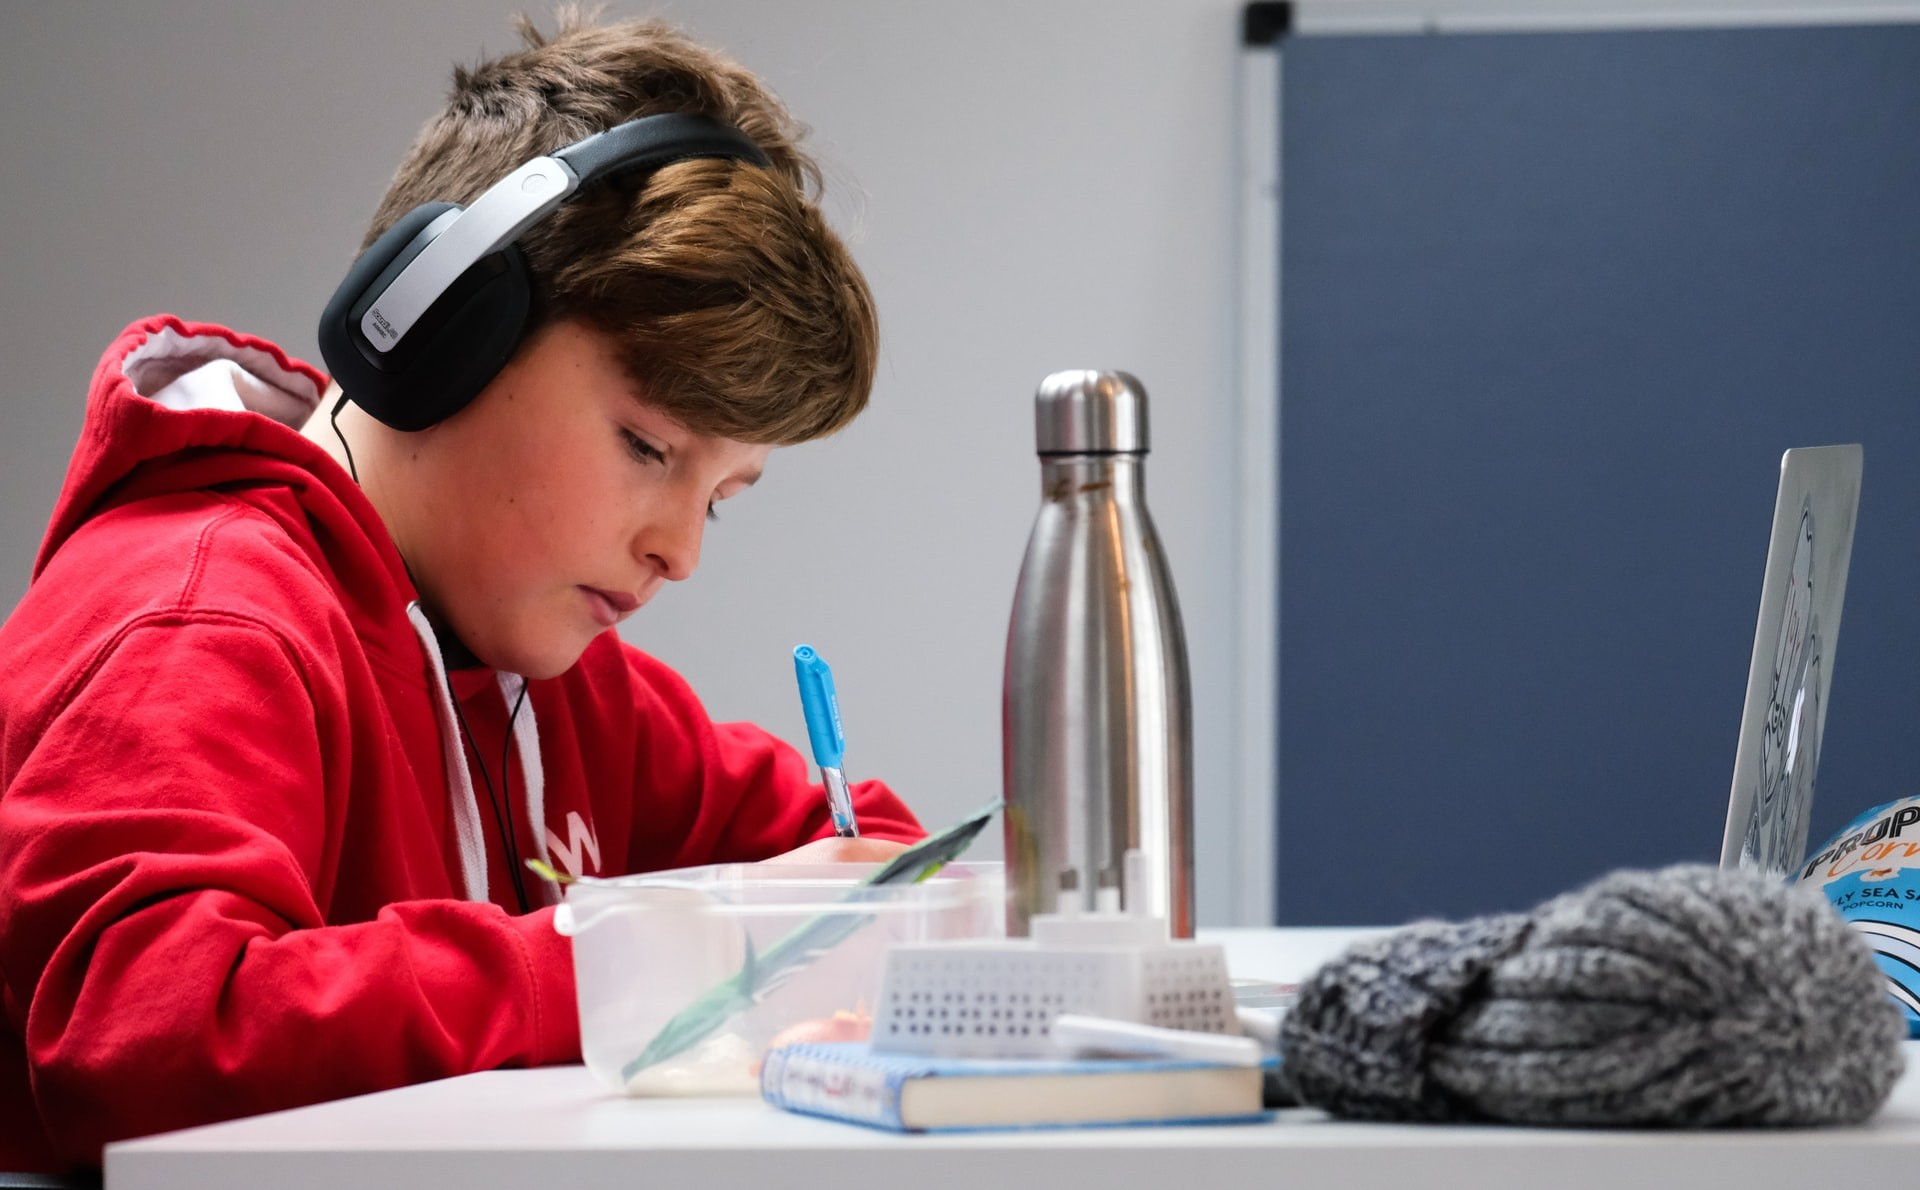 A young boy wears headphones and uses aural study strategies to prepare for his test.